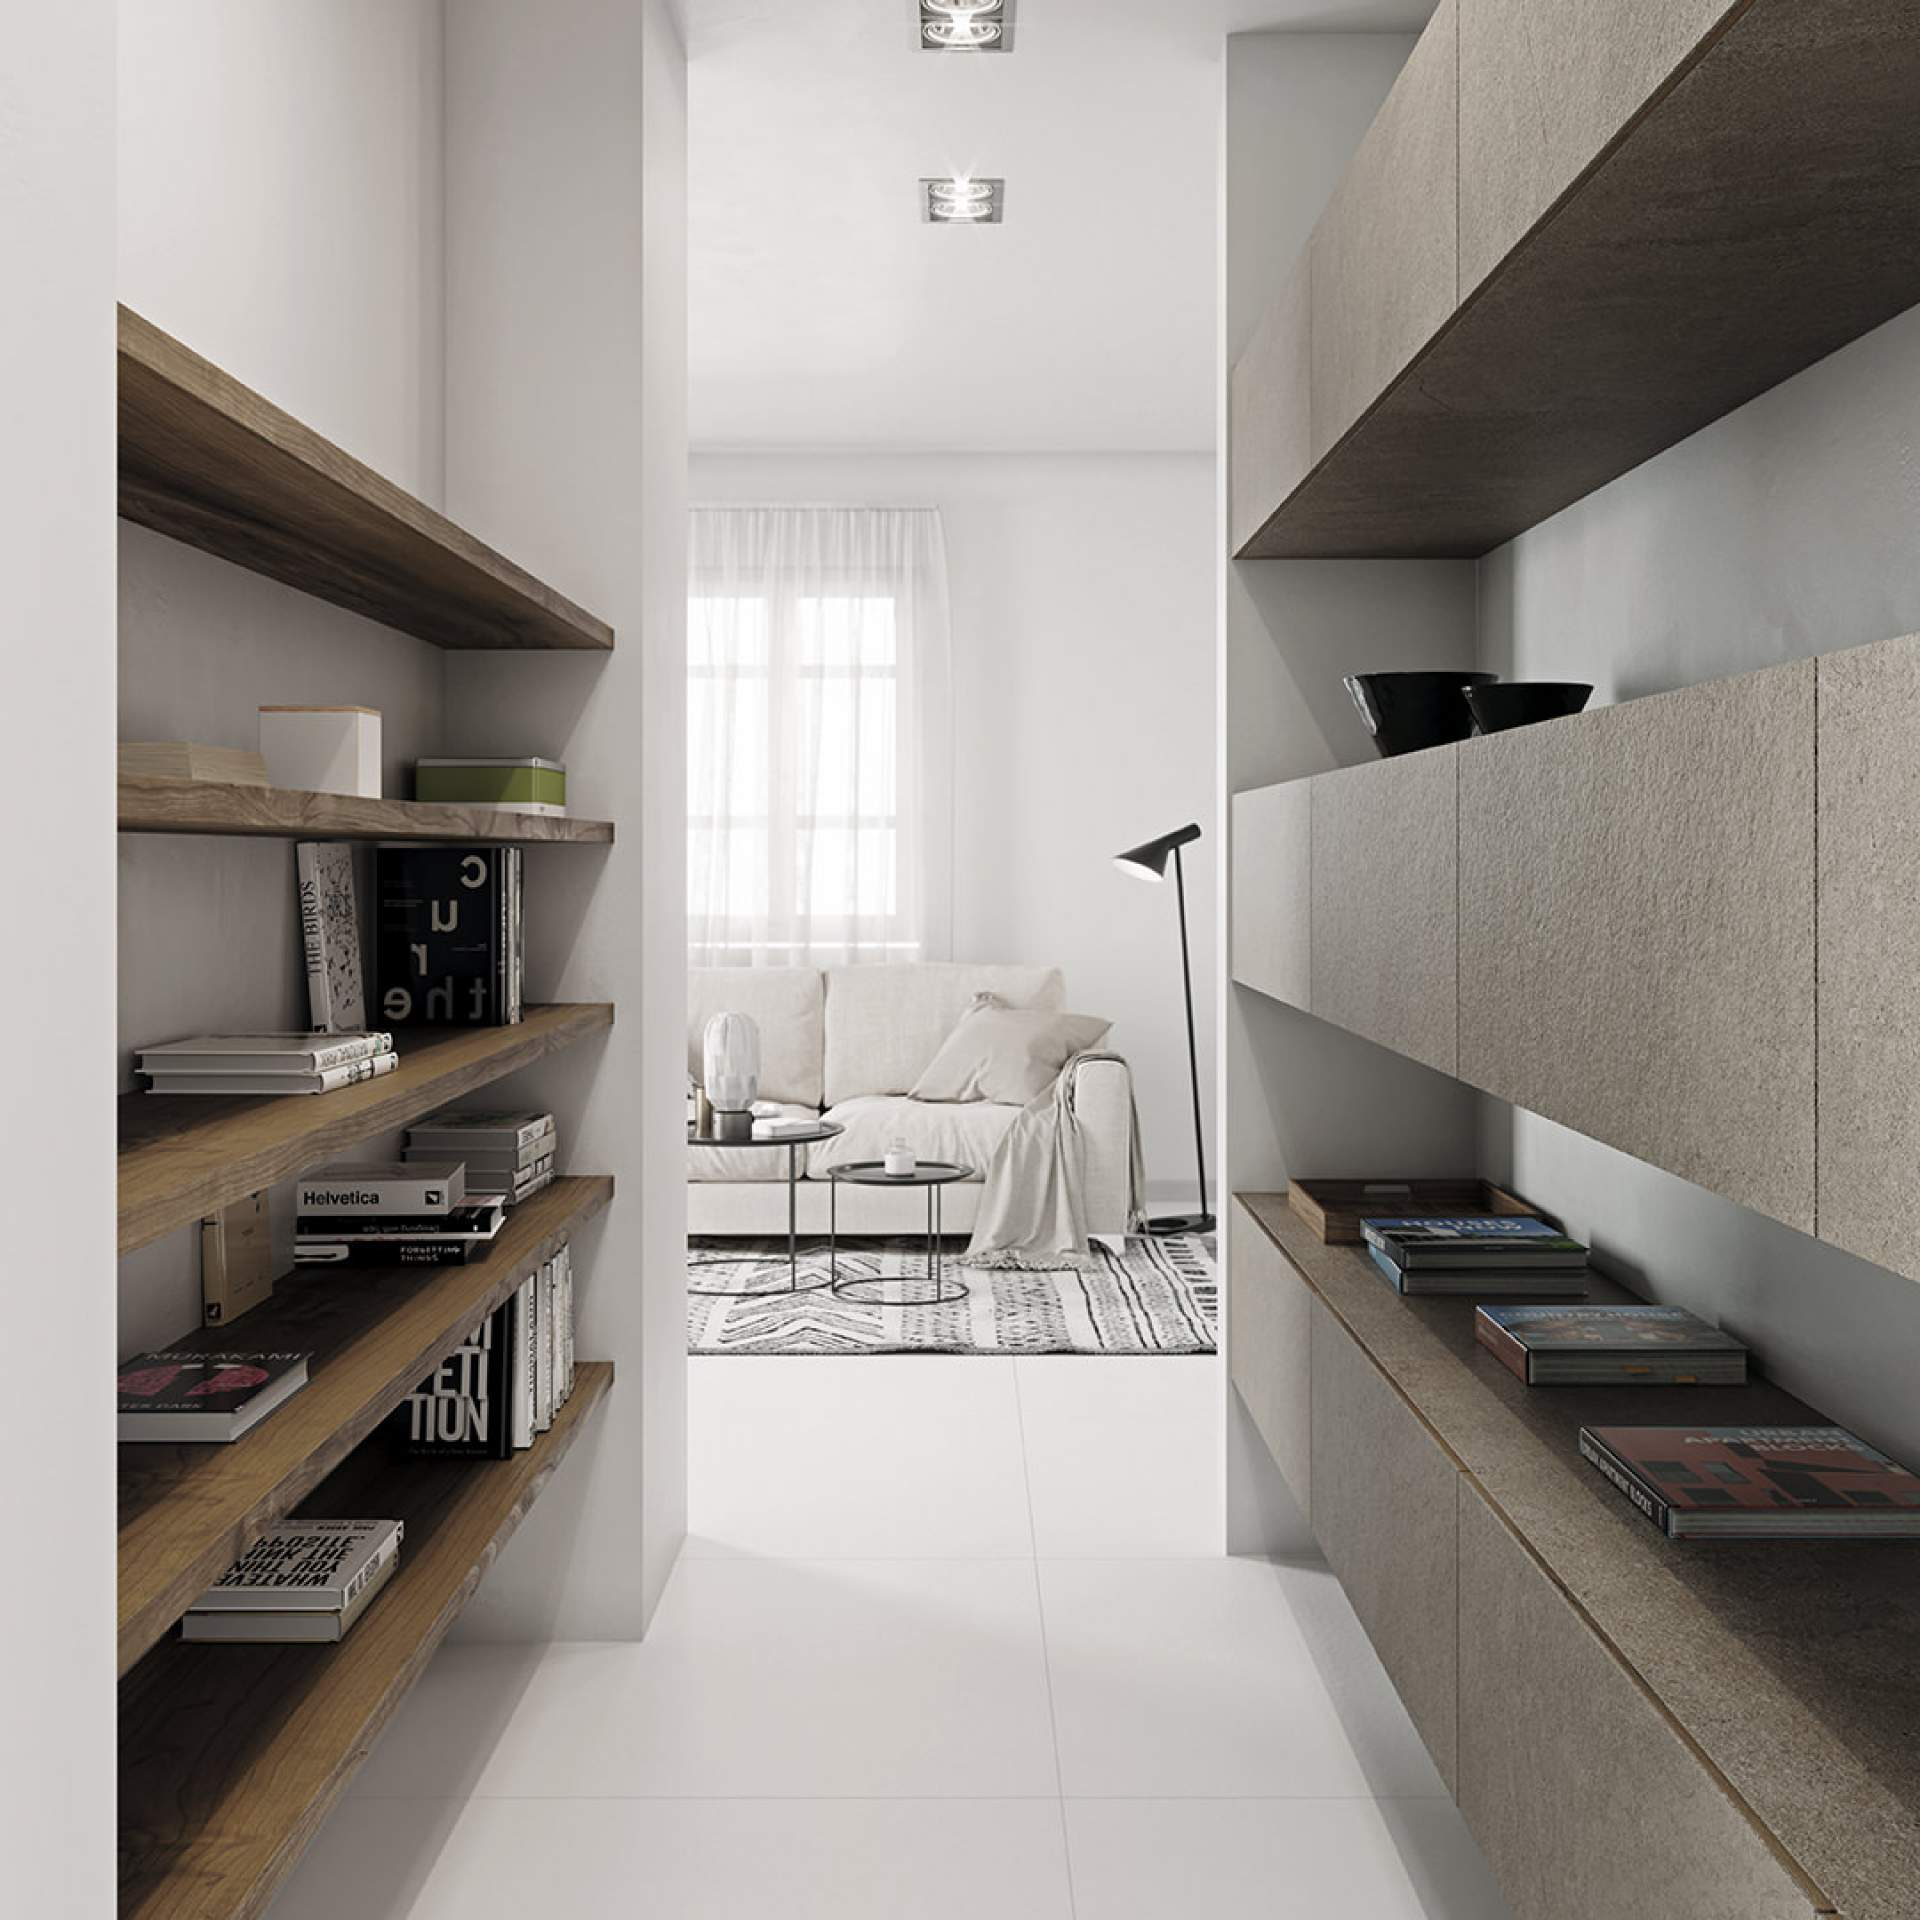 Blank Apartment setting using White Natural Tile